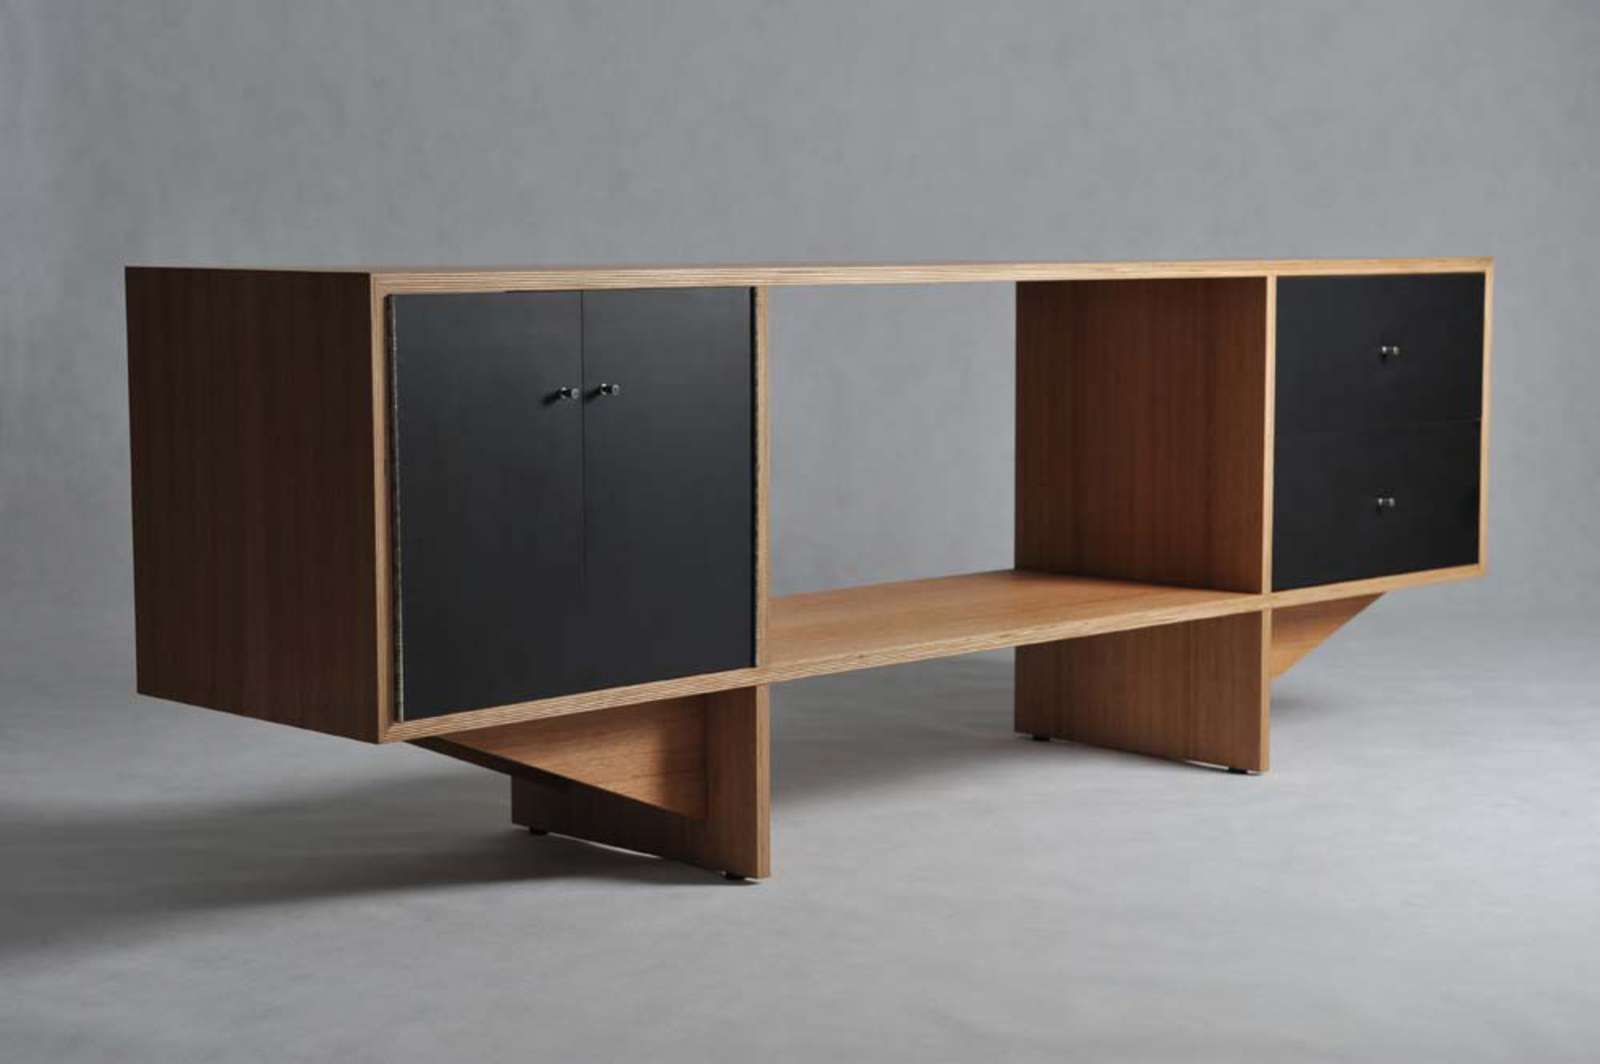 cantilevered-media-cabinet-3 image